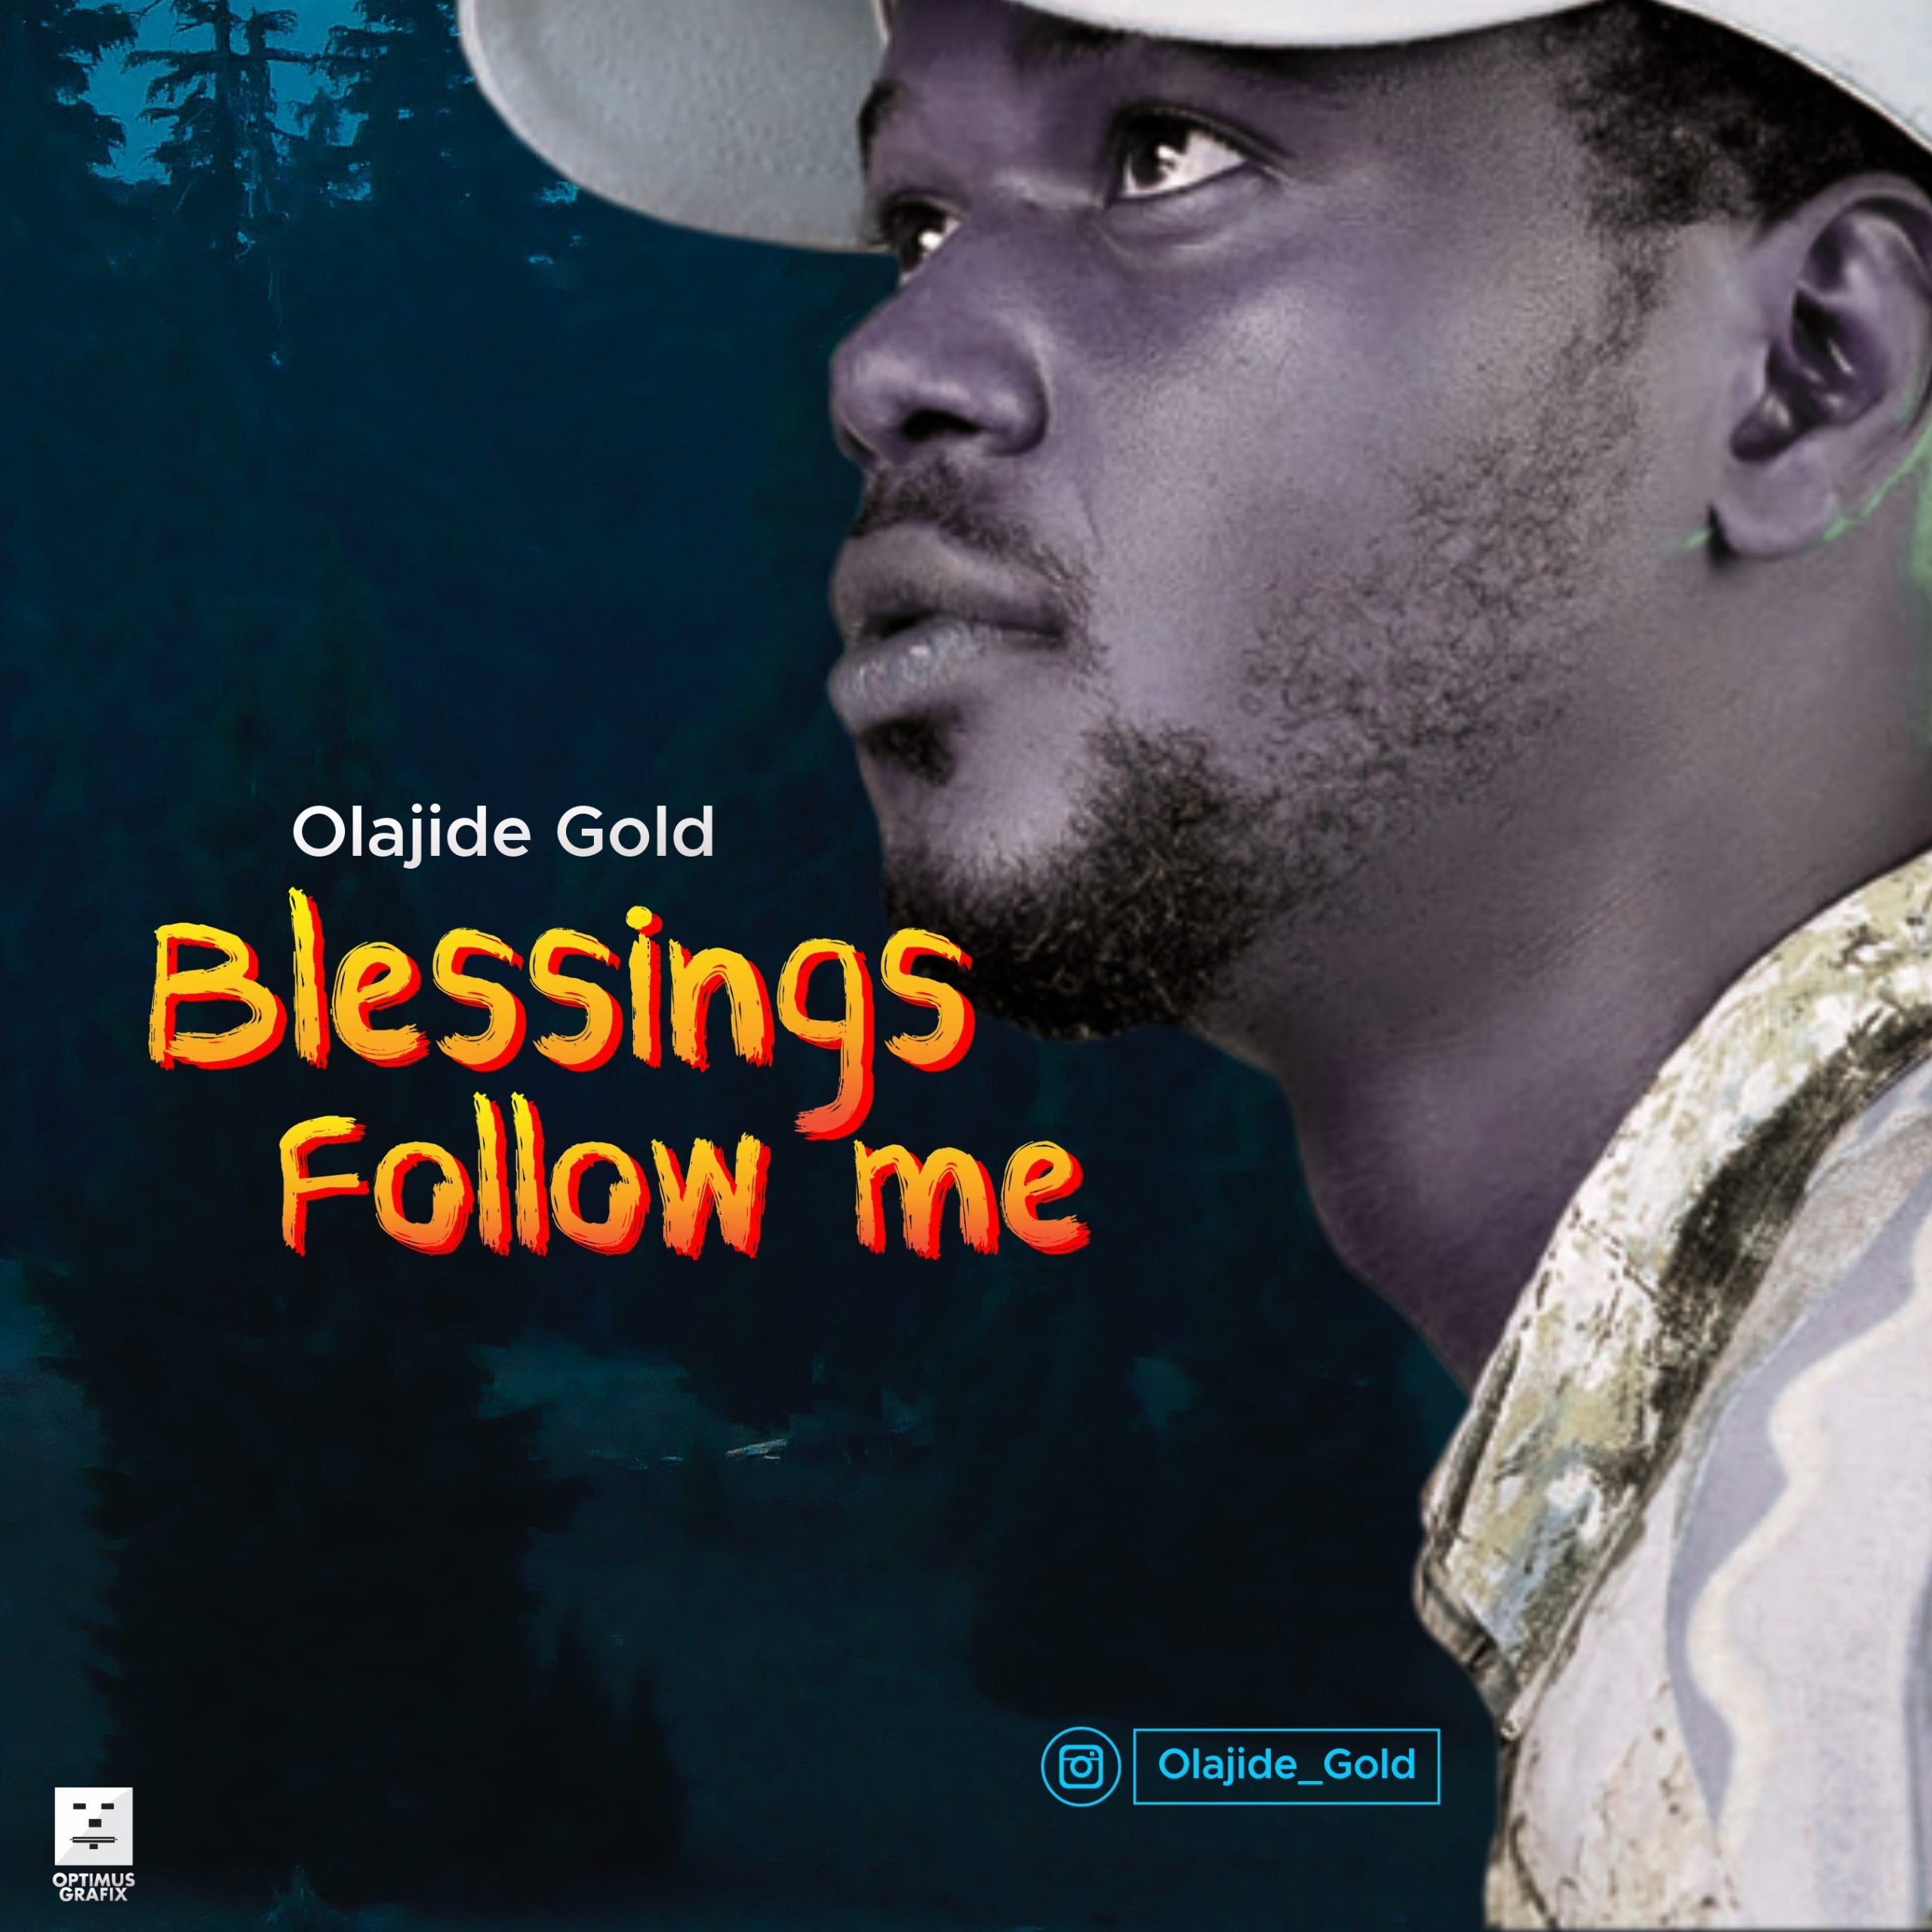 Olajide gold blessings follow me Eventriga tv